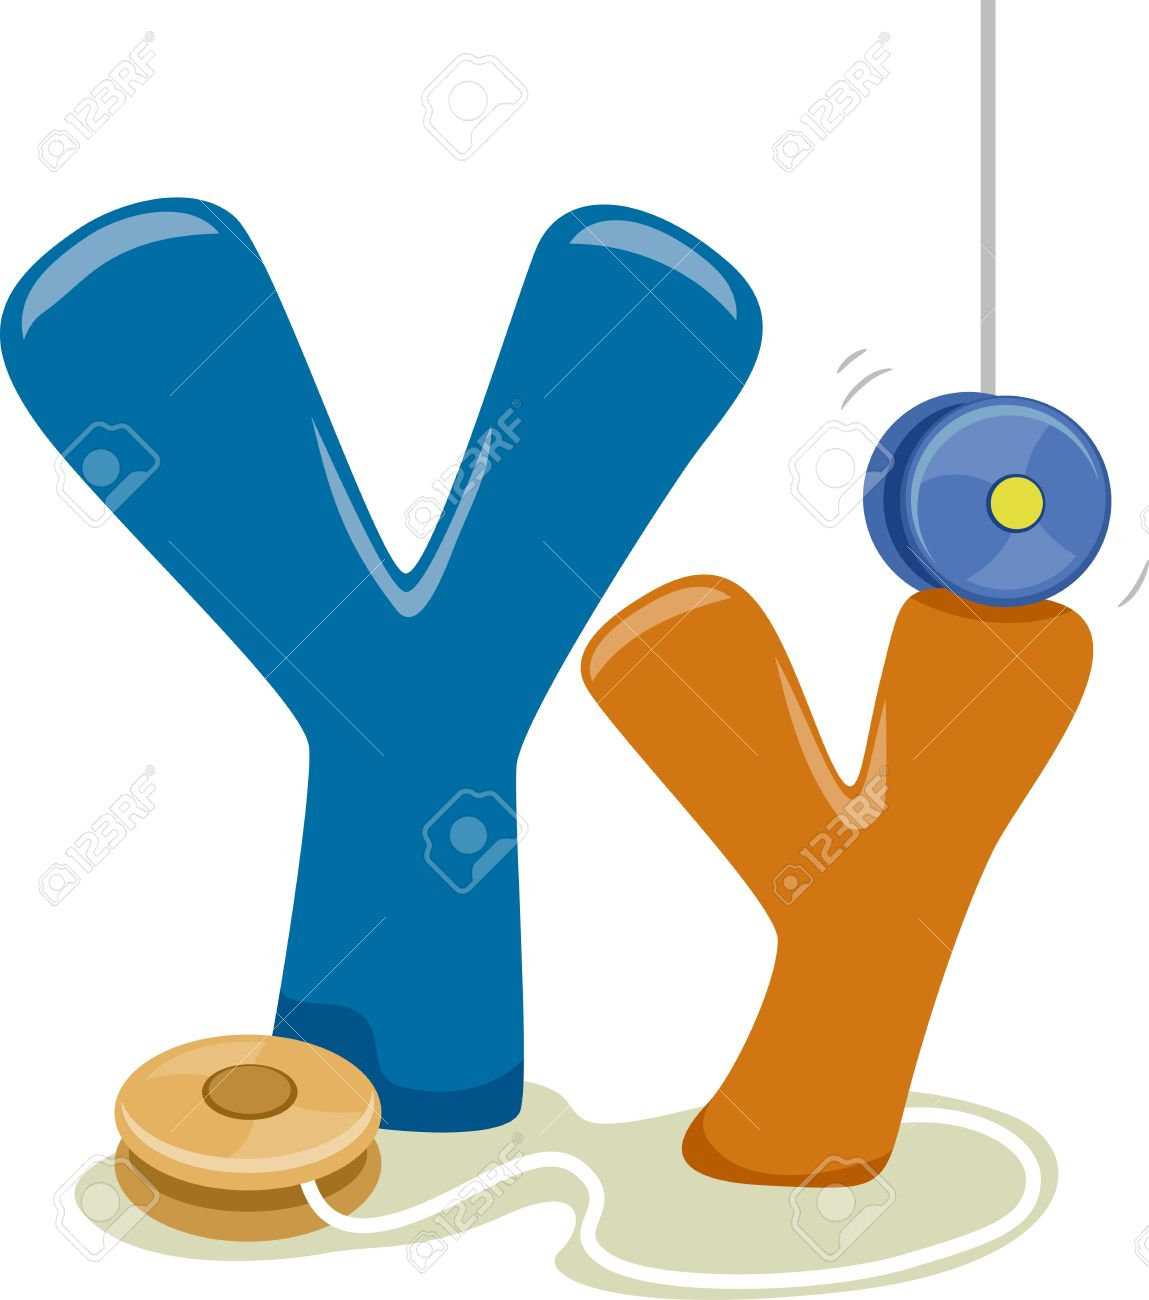 illustration featuring the letter y stock photo, picture and royalty